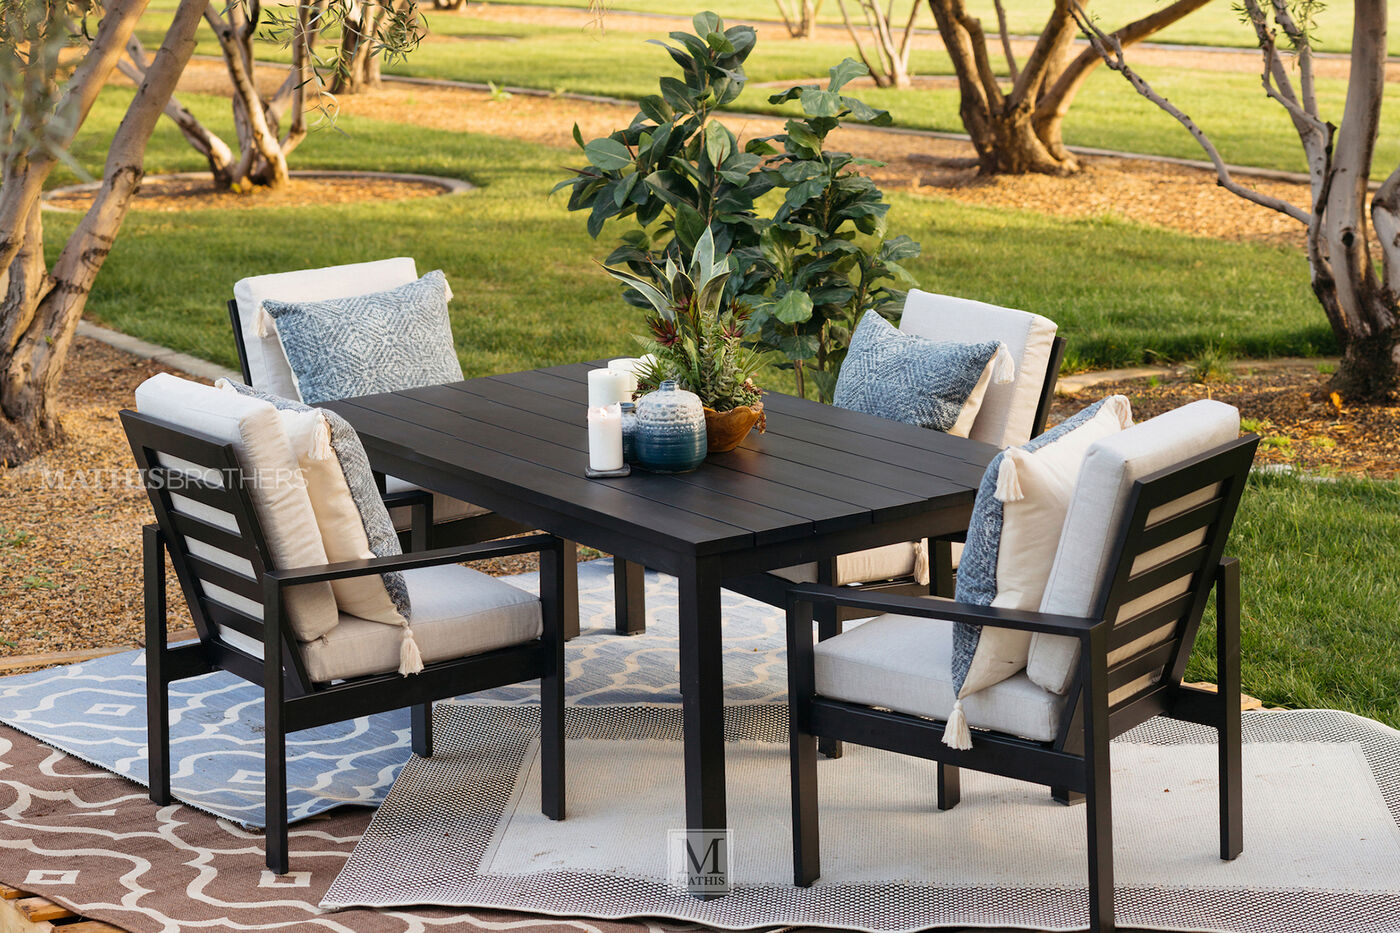 72 Quot Modern Aluminum Patio Dining Table In Black Mathis